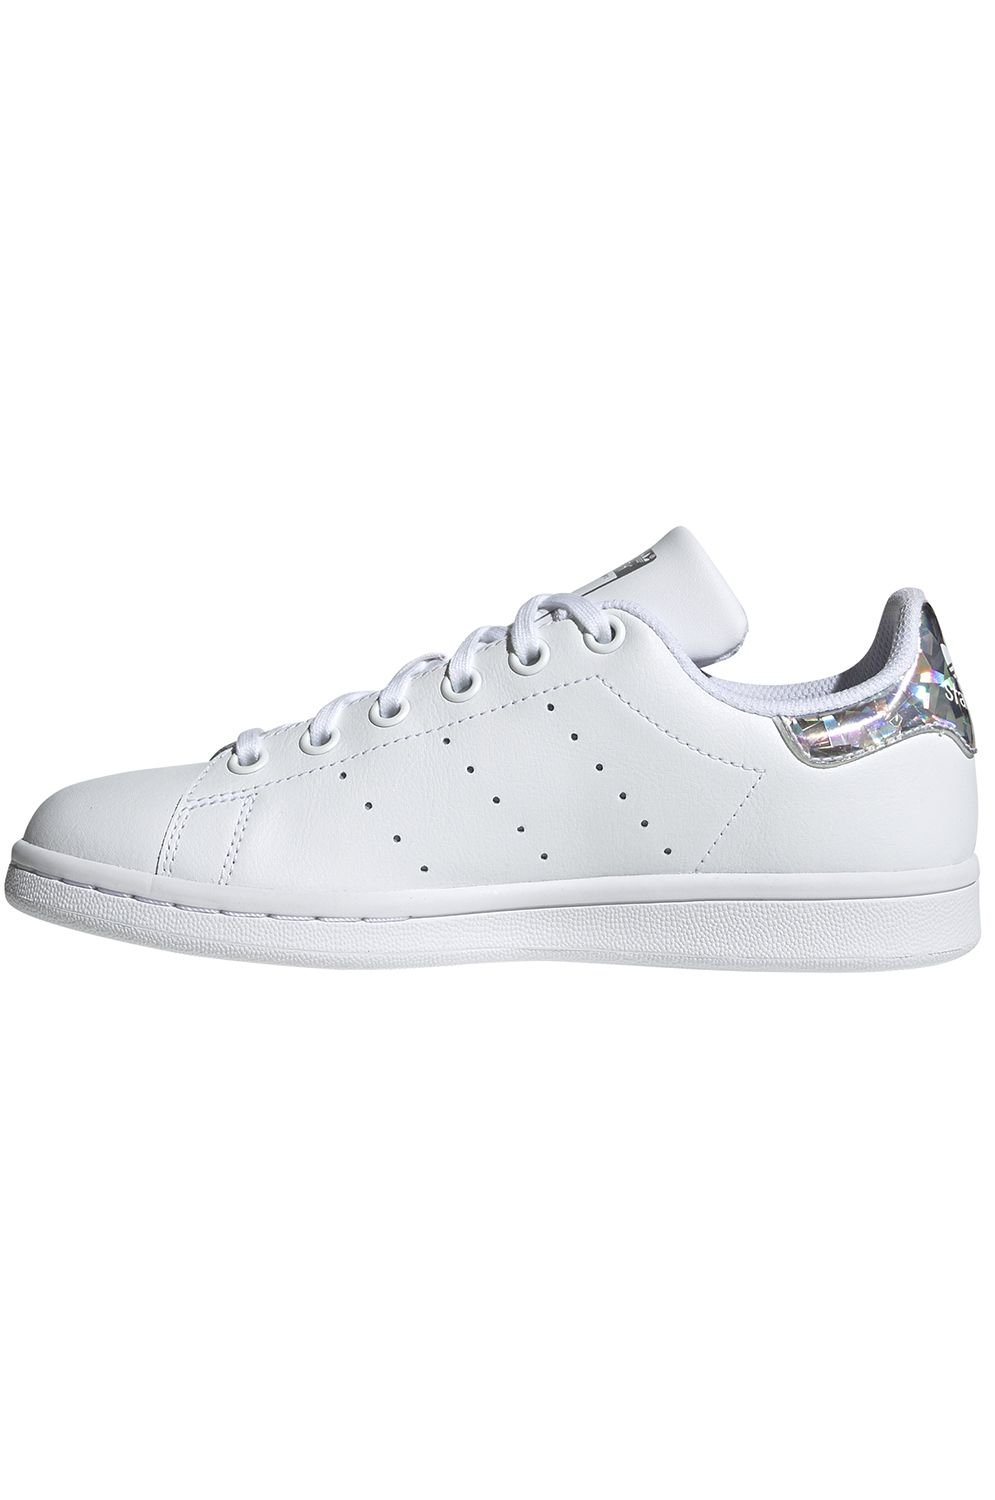 Tenis Adidas STAN SMITH Ftwr White/Ftwr White/Core Black